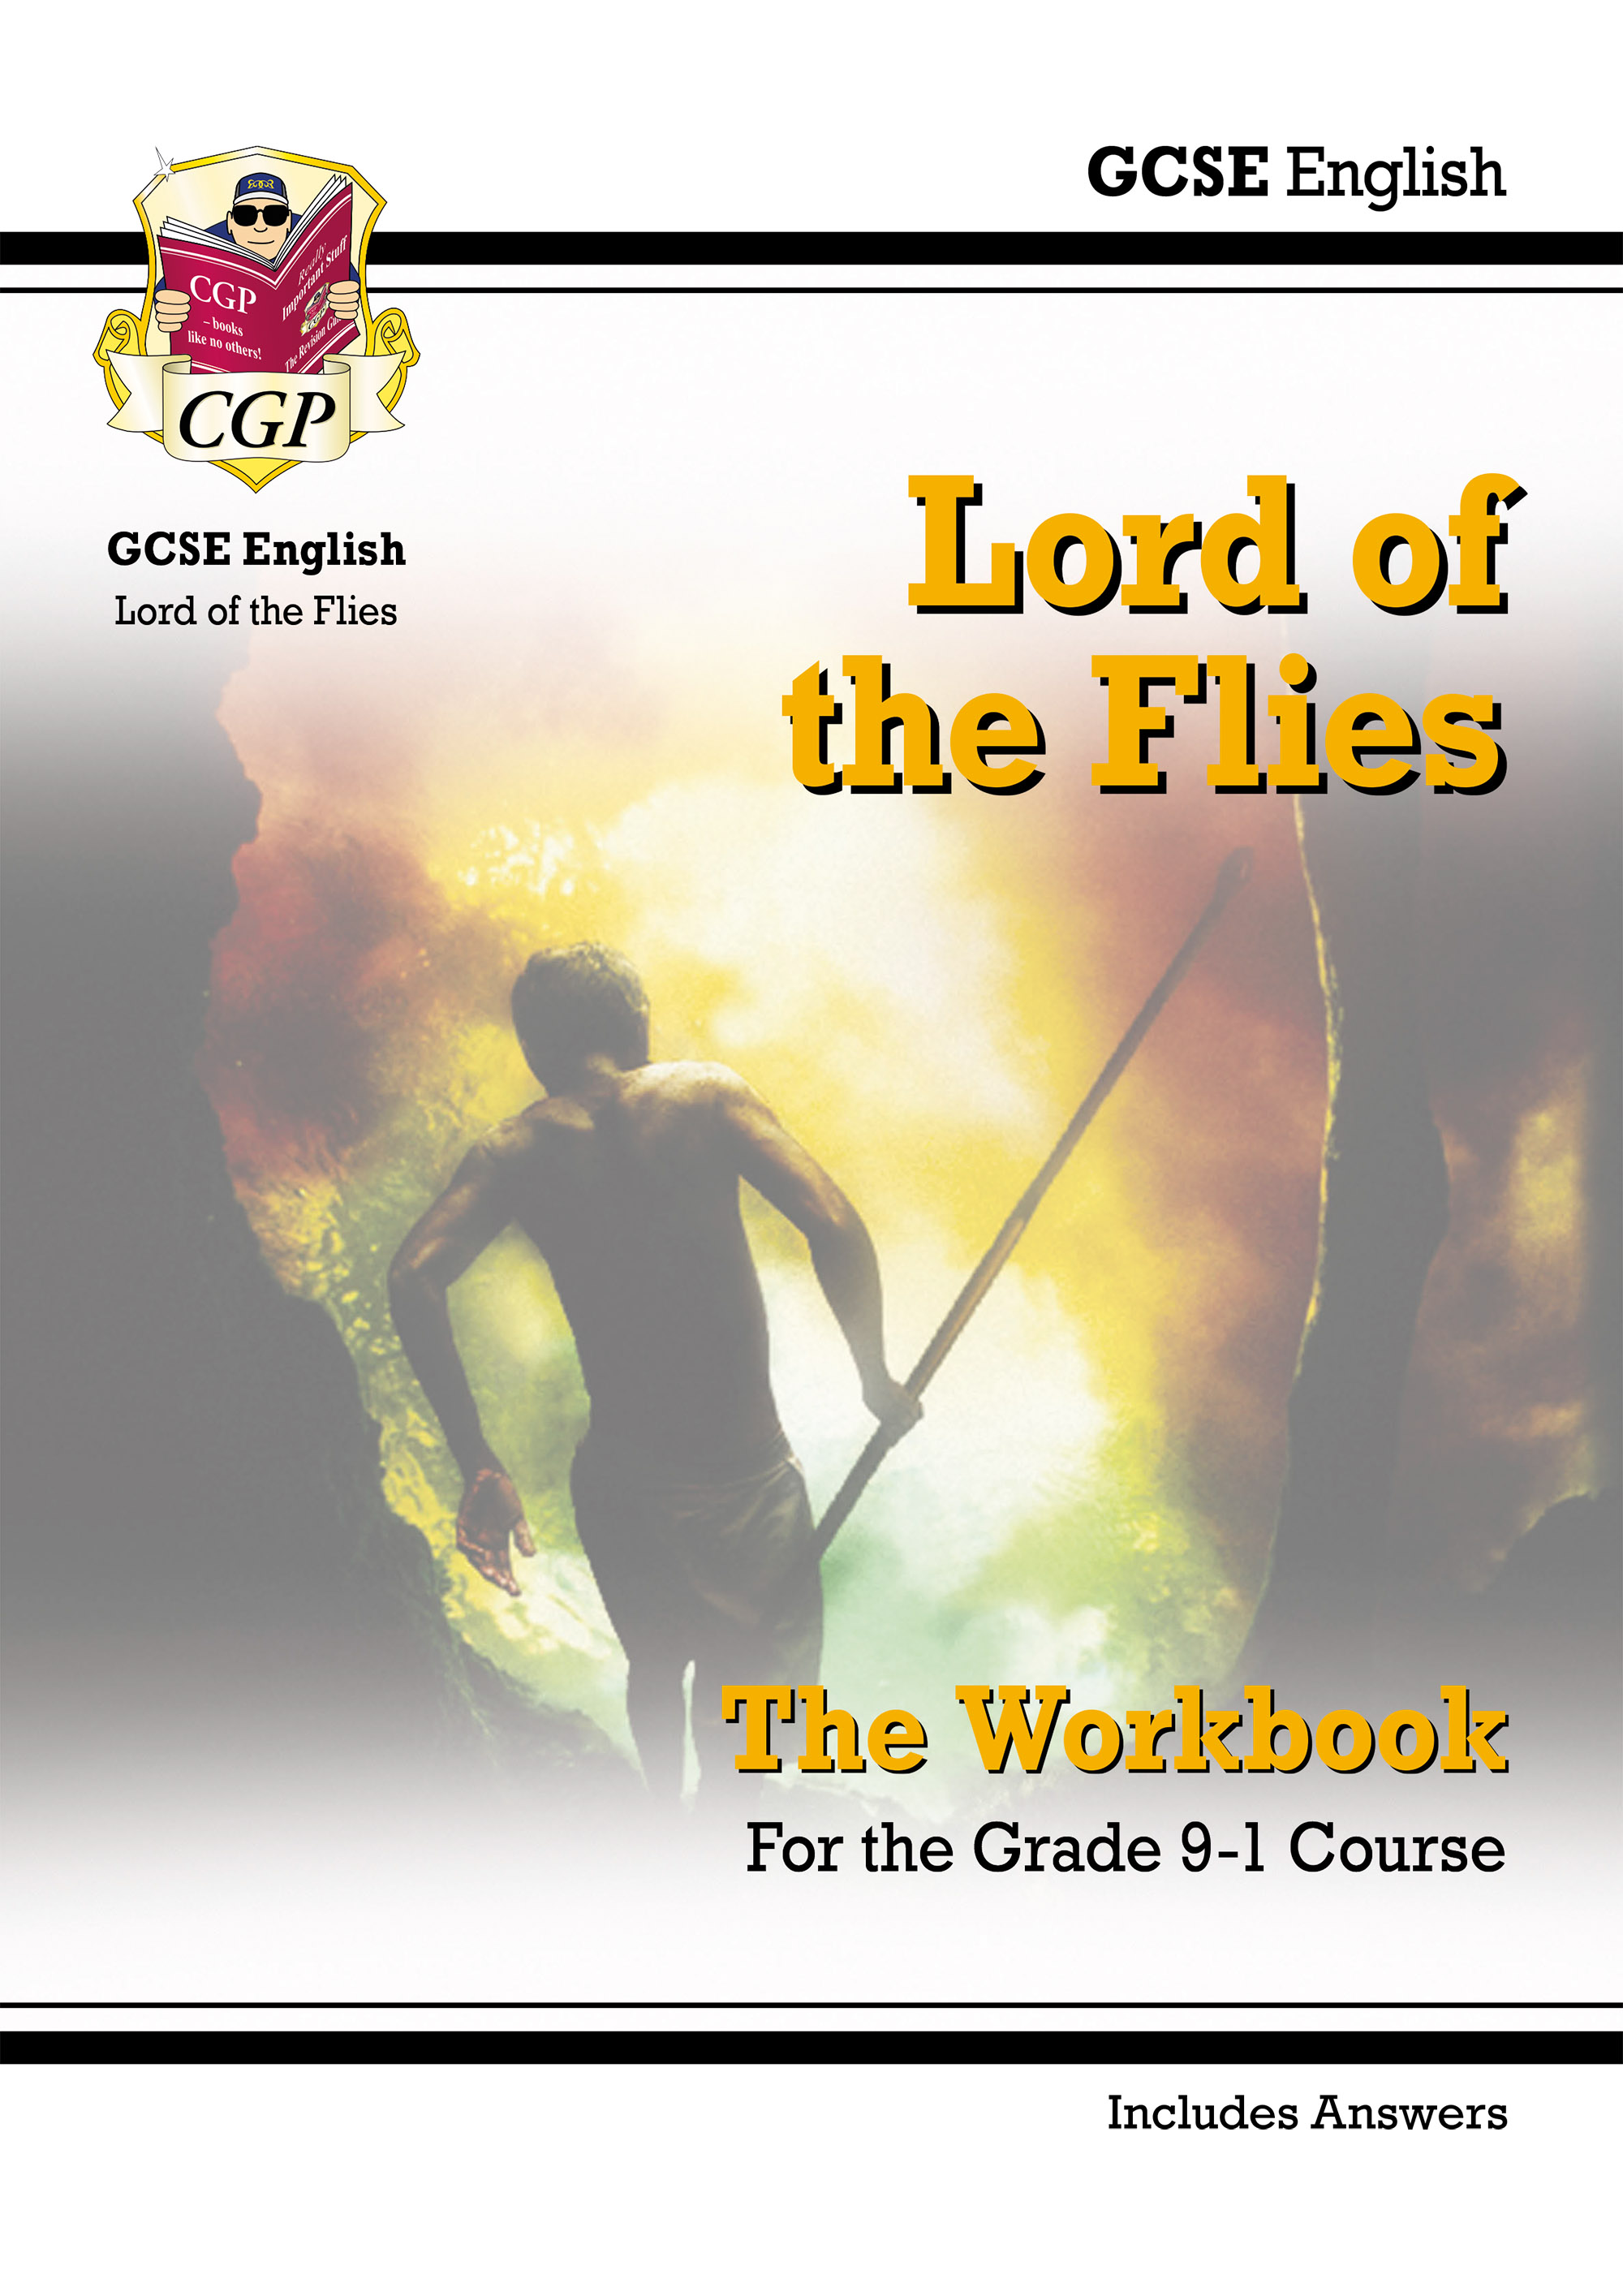 ETWL41DK - New Grade 9-1 GCSE English - Lord of the Flies Workbook (includes Answers)